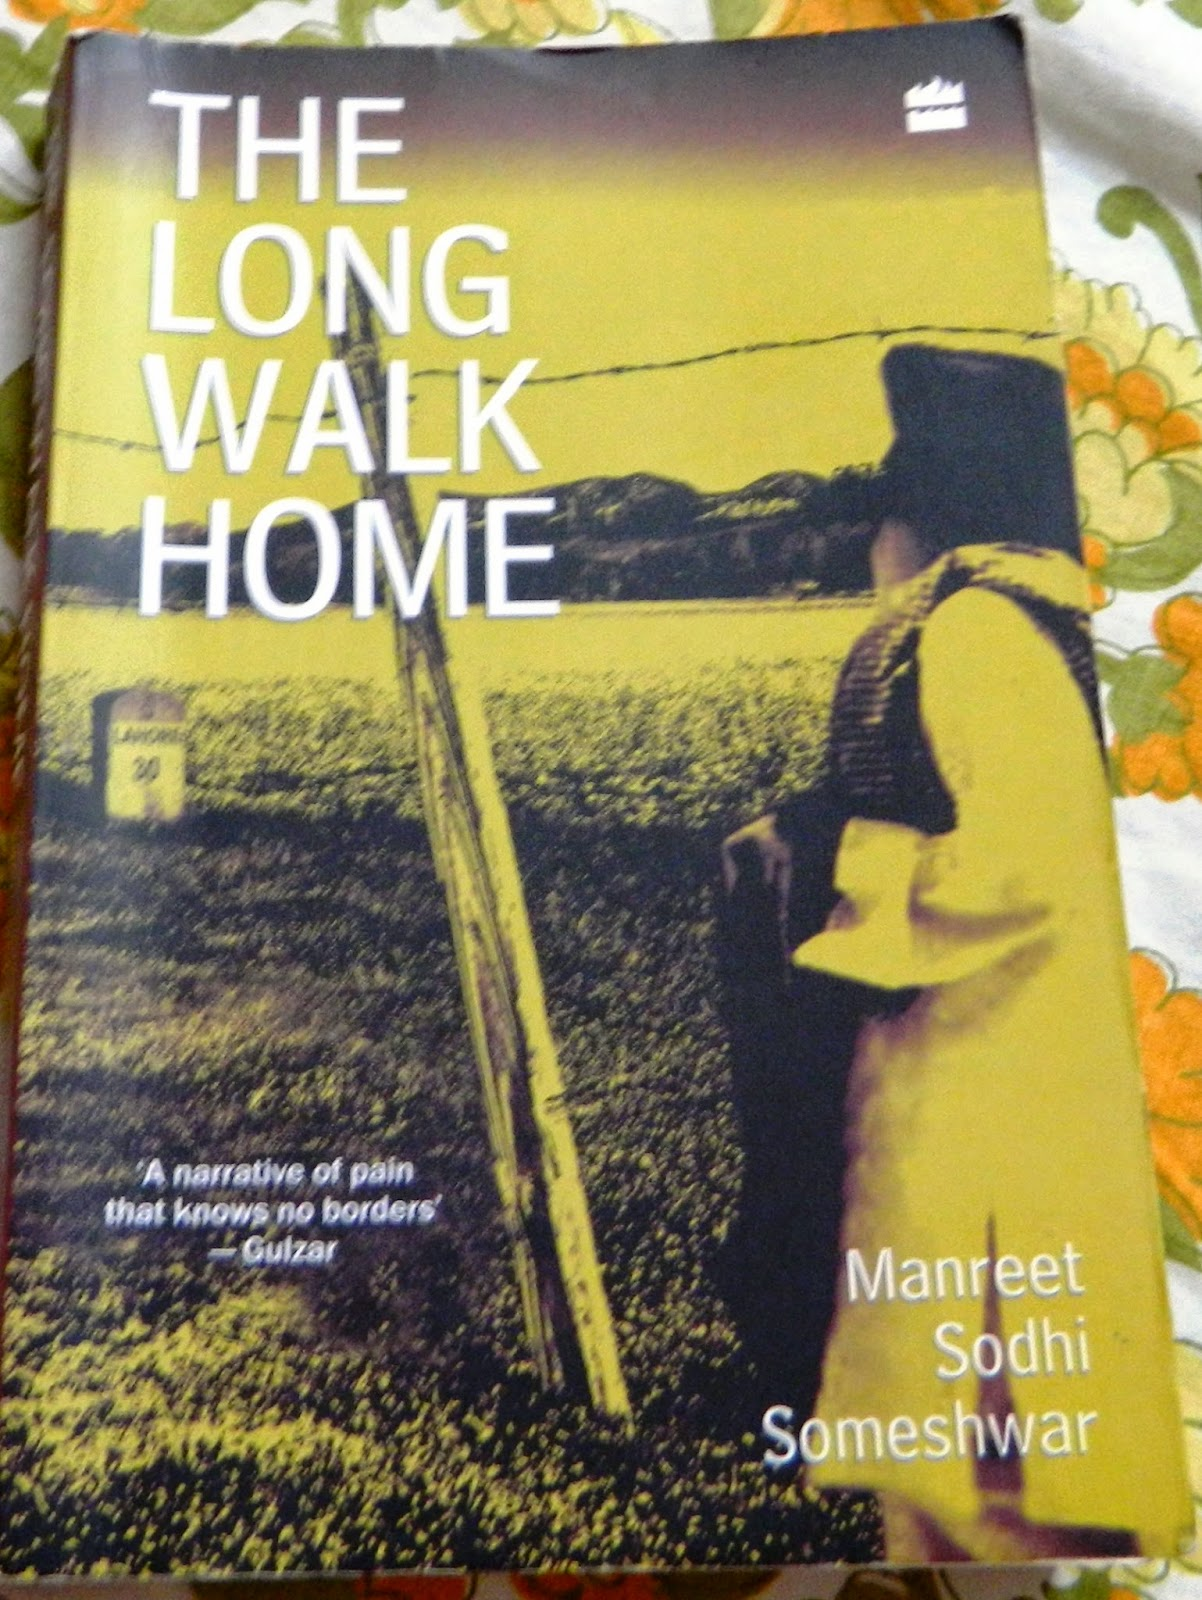 The Long Walk Home Manreet Sodhi Someshwar